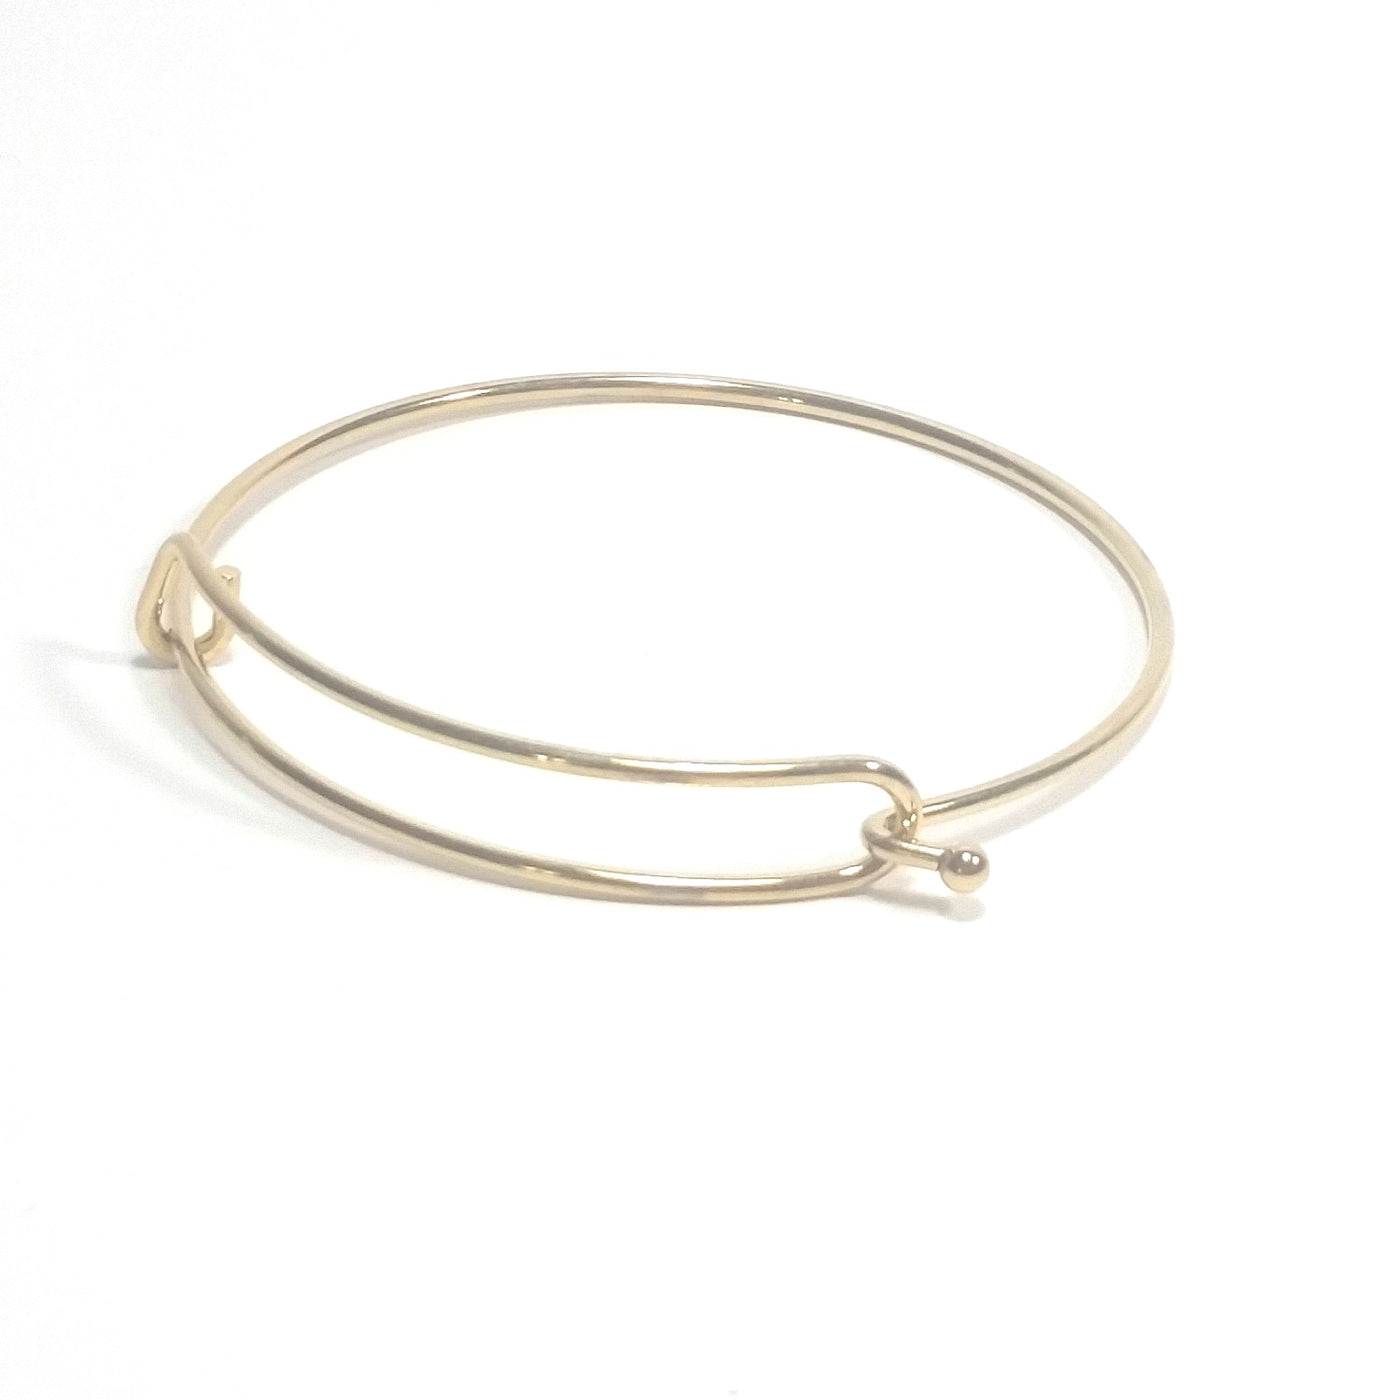 Infinity Bangle Bracelet Stainless Steel Charm Jewelry Finding